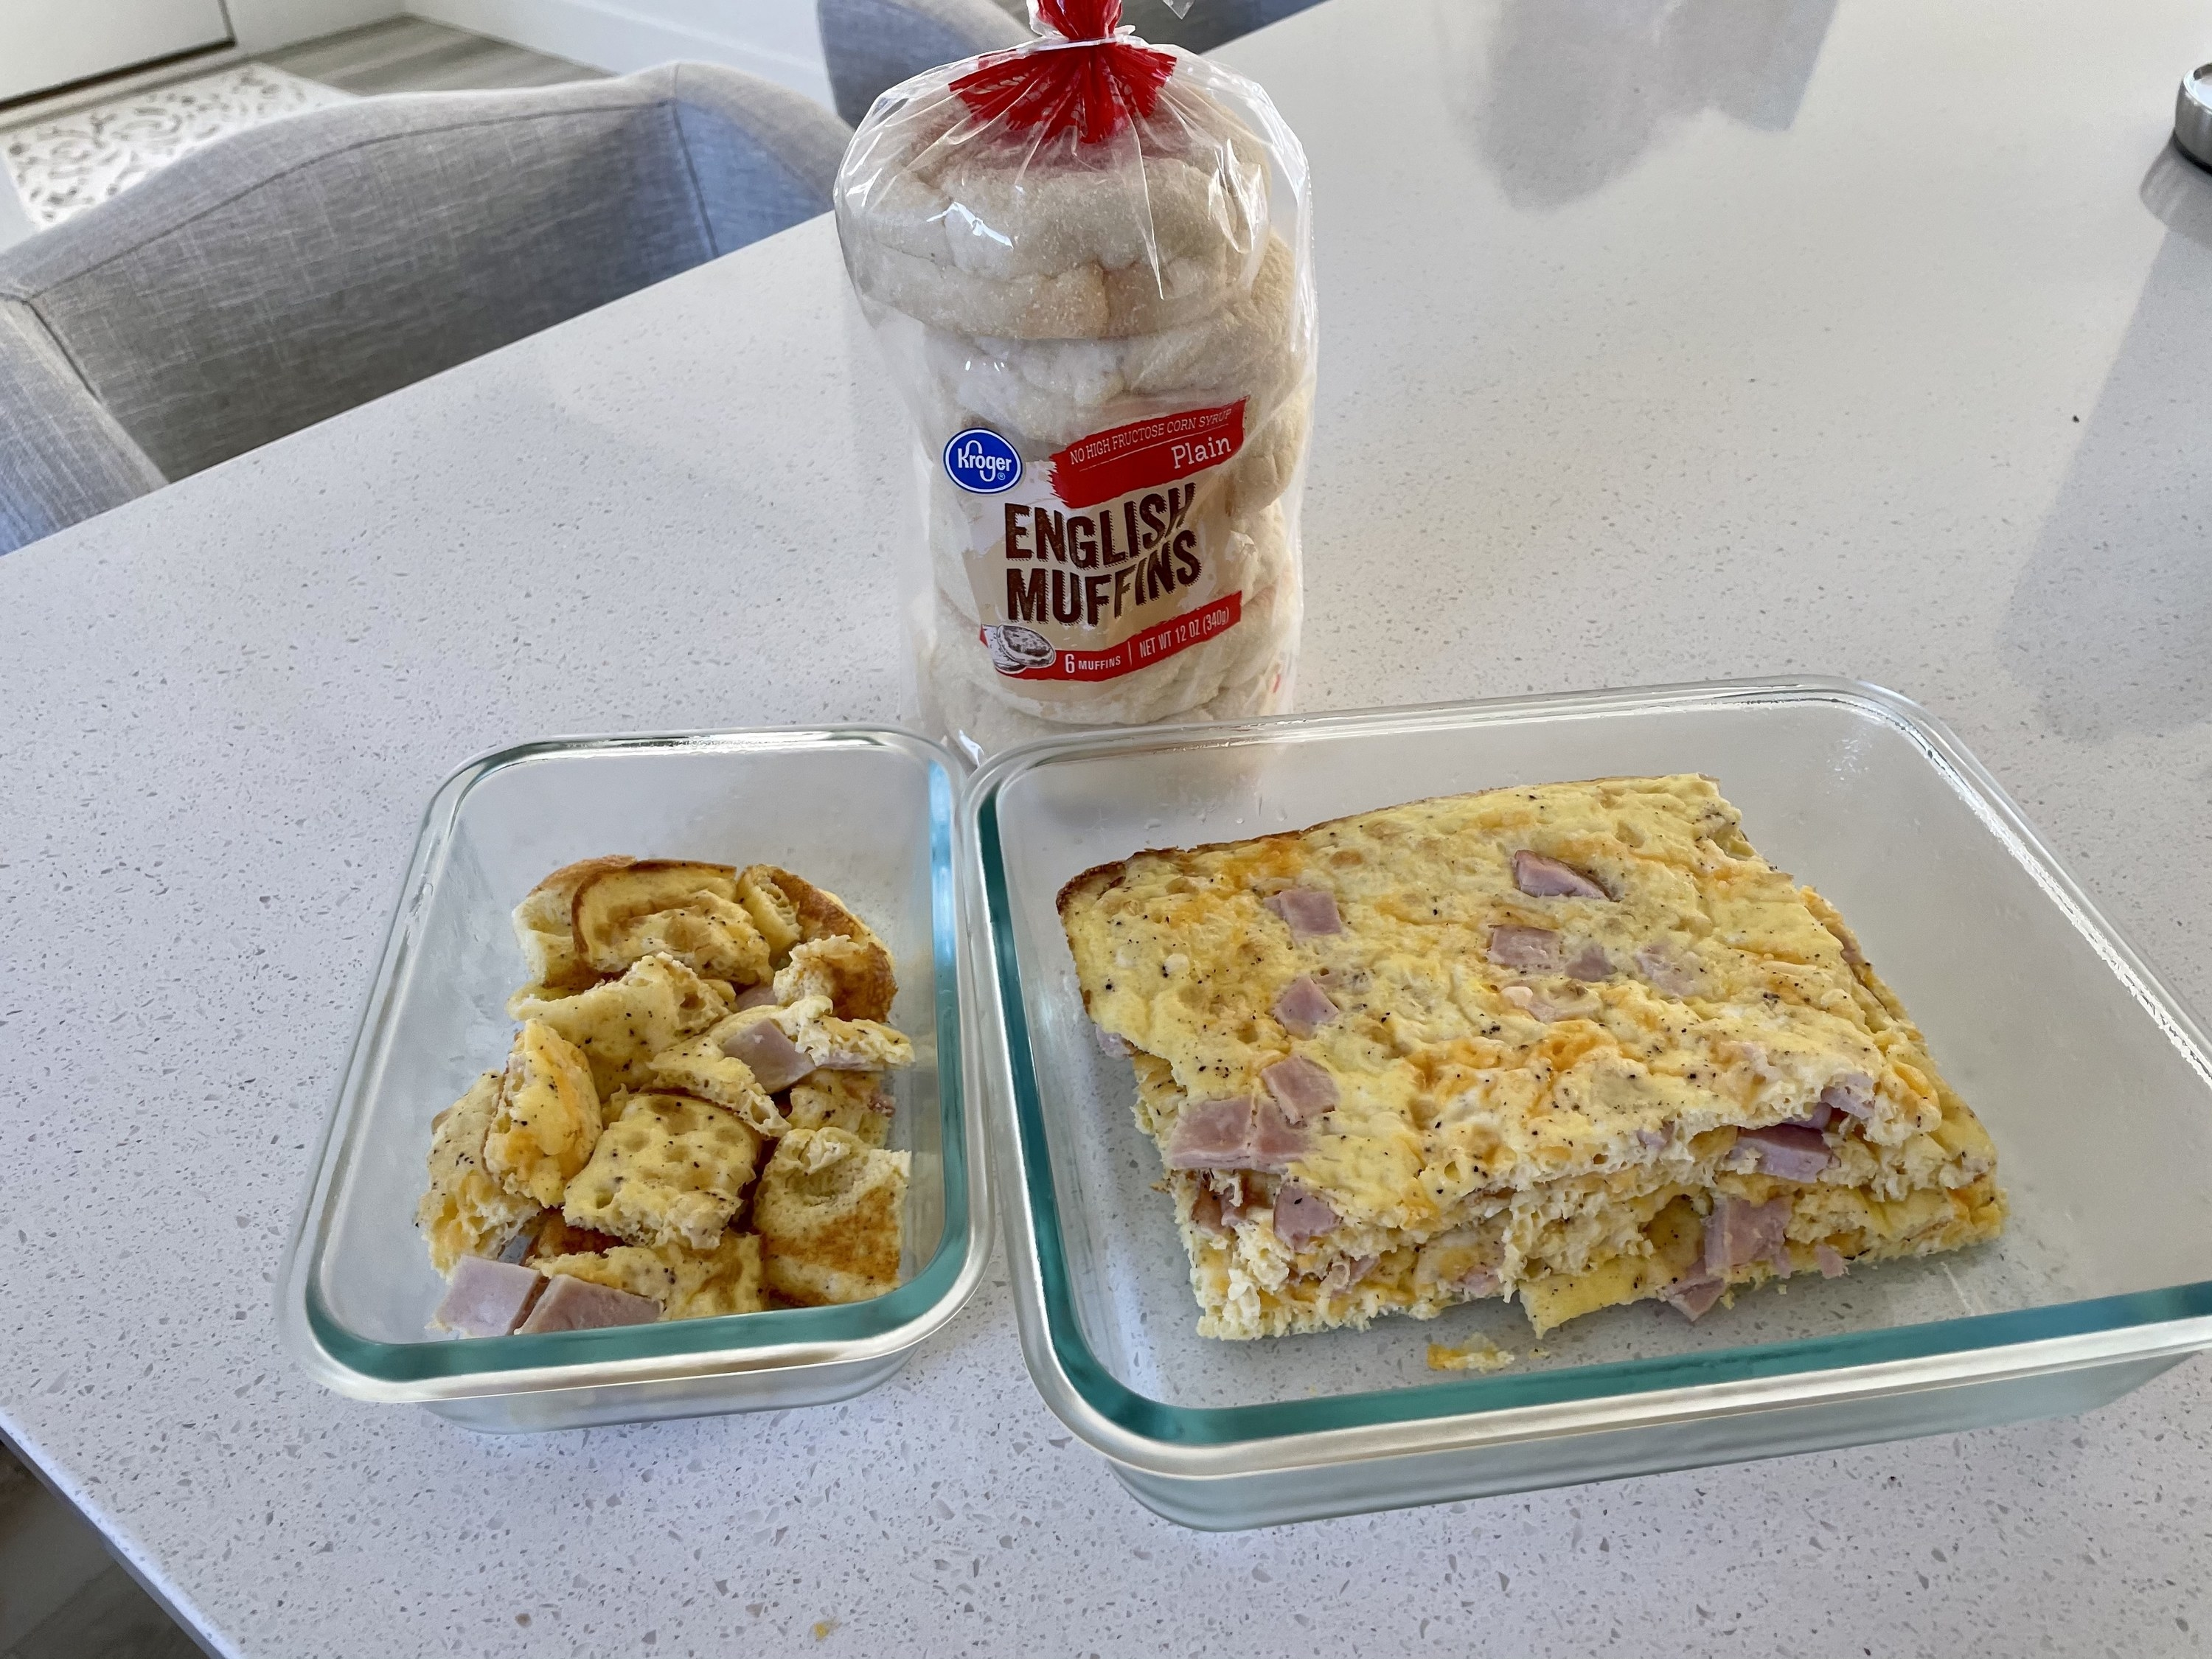 Leftover eggs and English muffins